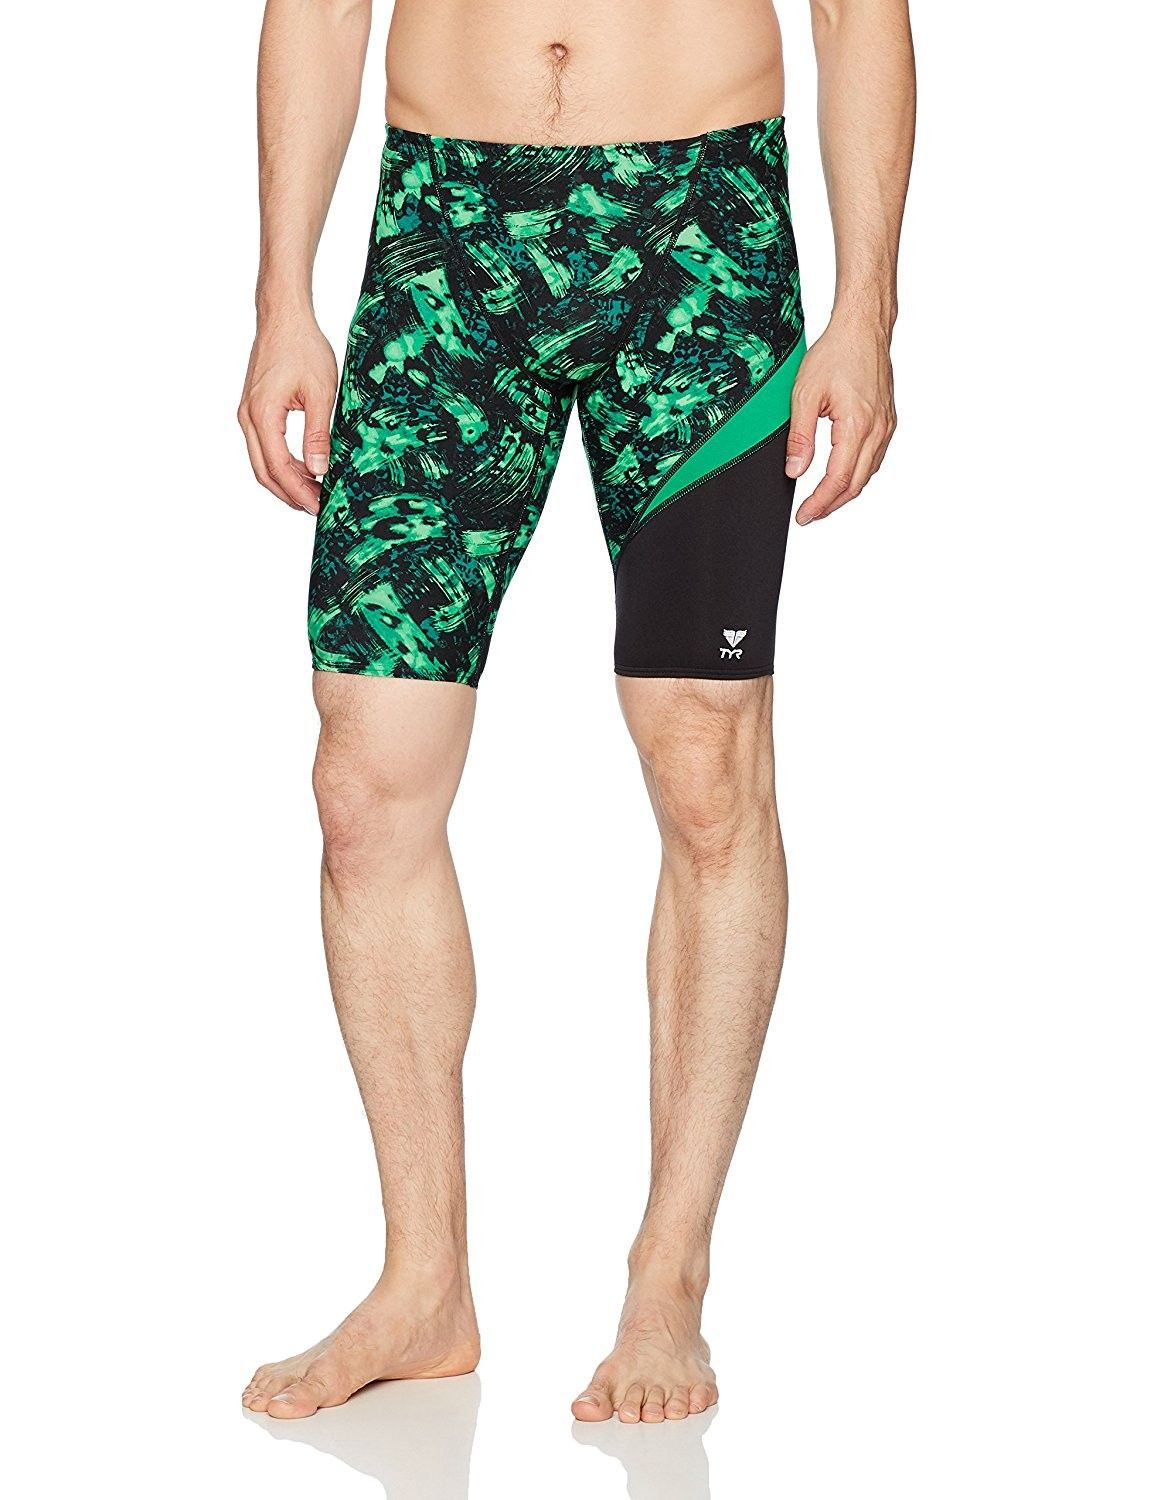 cd0dbf78f2 Mens Emulsion Wave Jammer - Green - C31827A2GUO,Men's Clothing, Swim,  Racing #Men #fashion #clothing #outfits #gifts #Racing